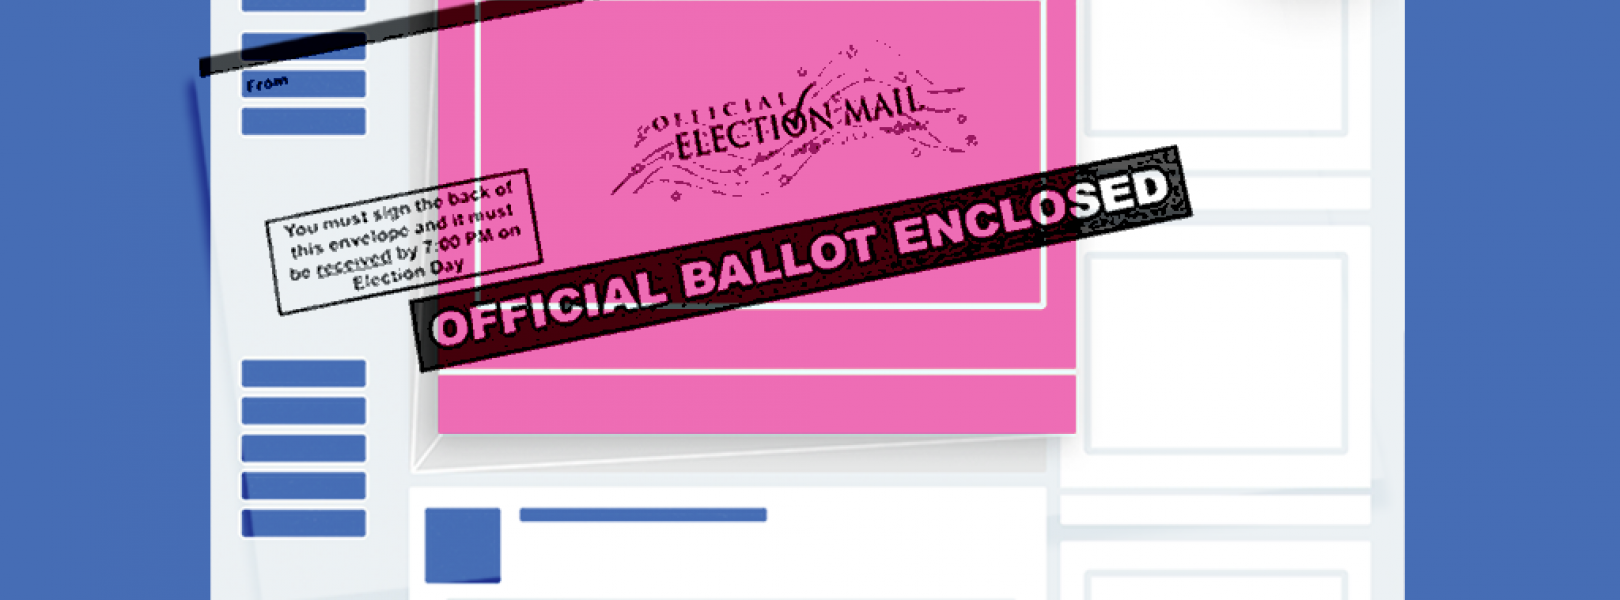 mail-in ballot and facebook